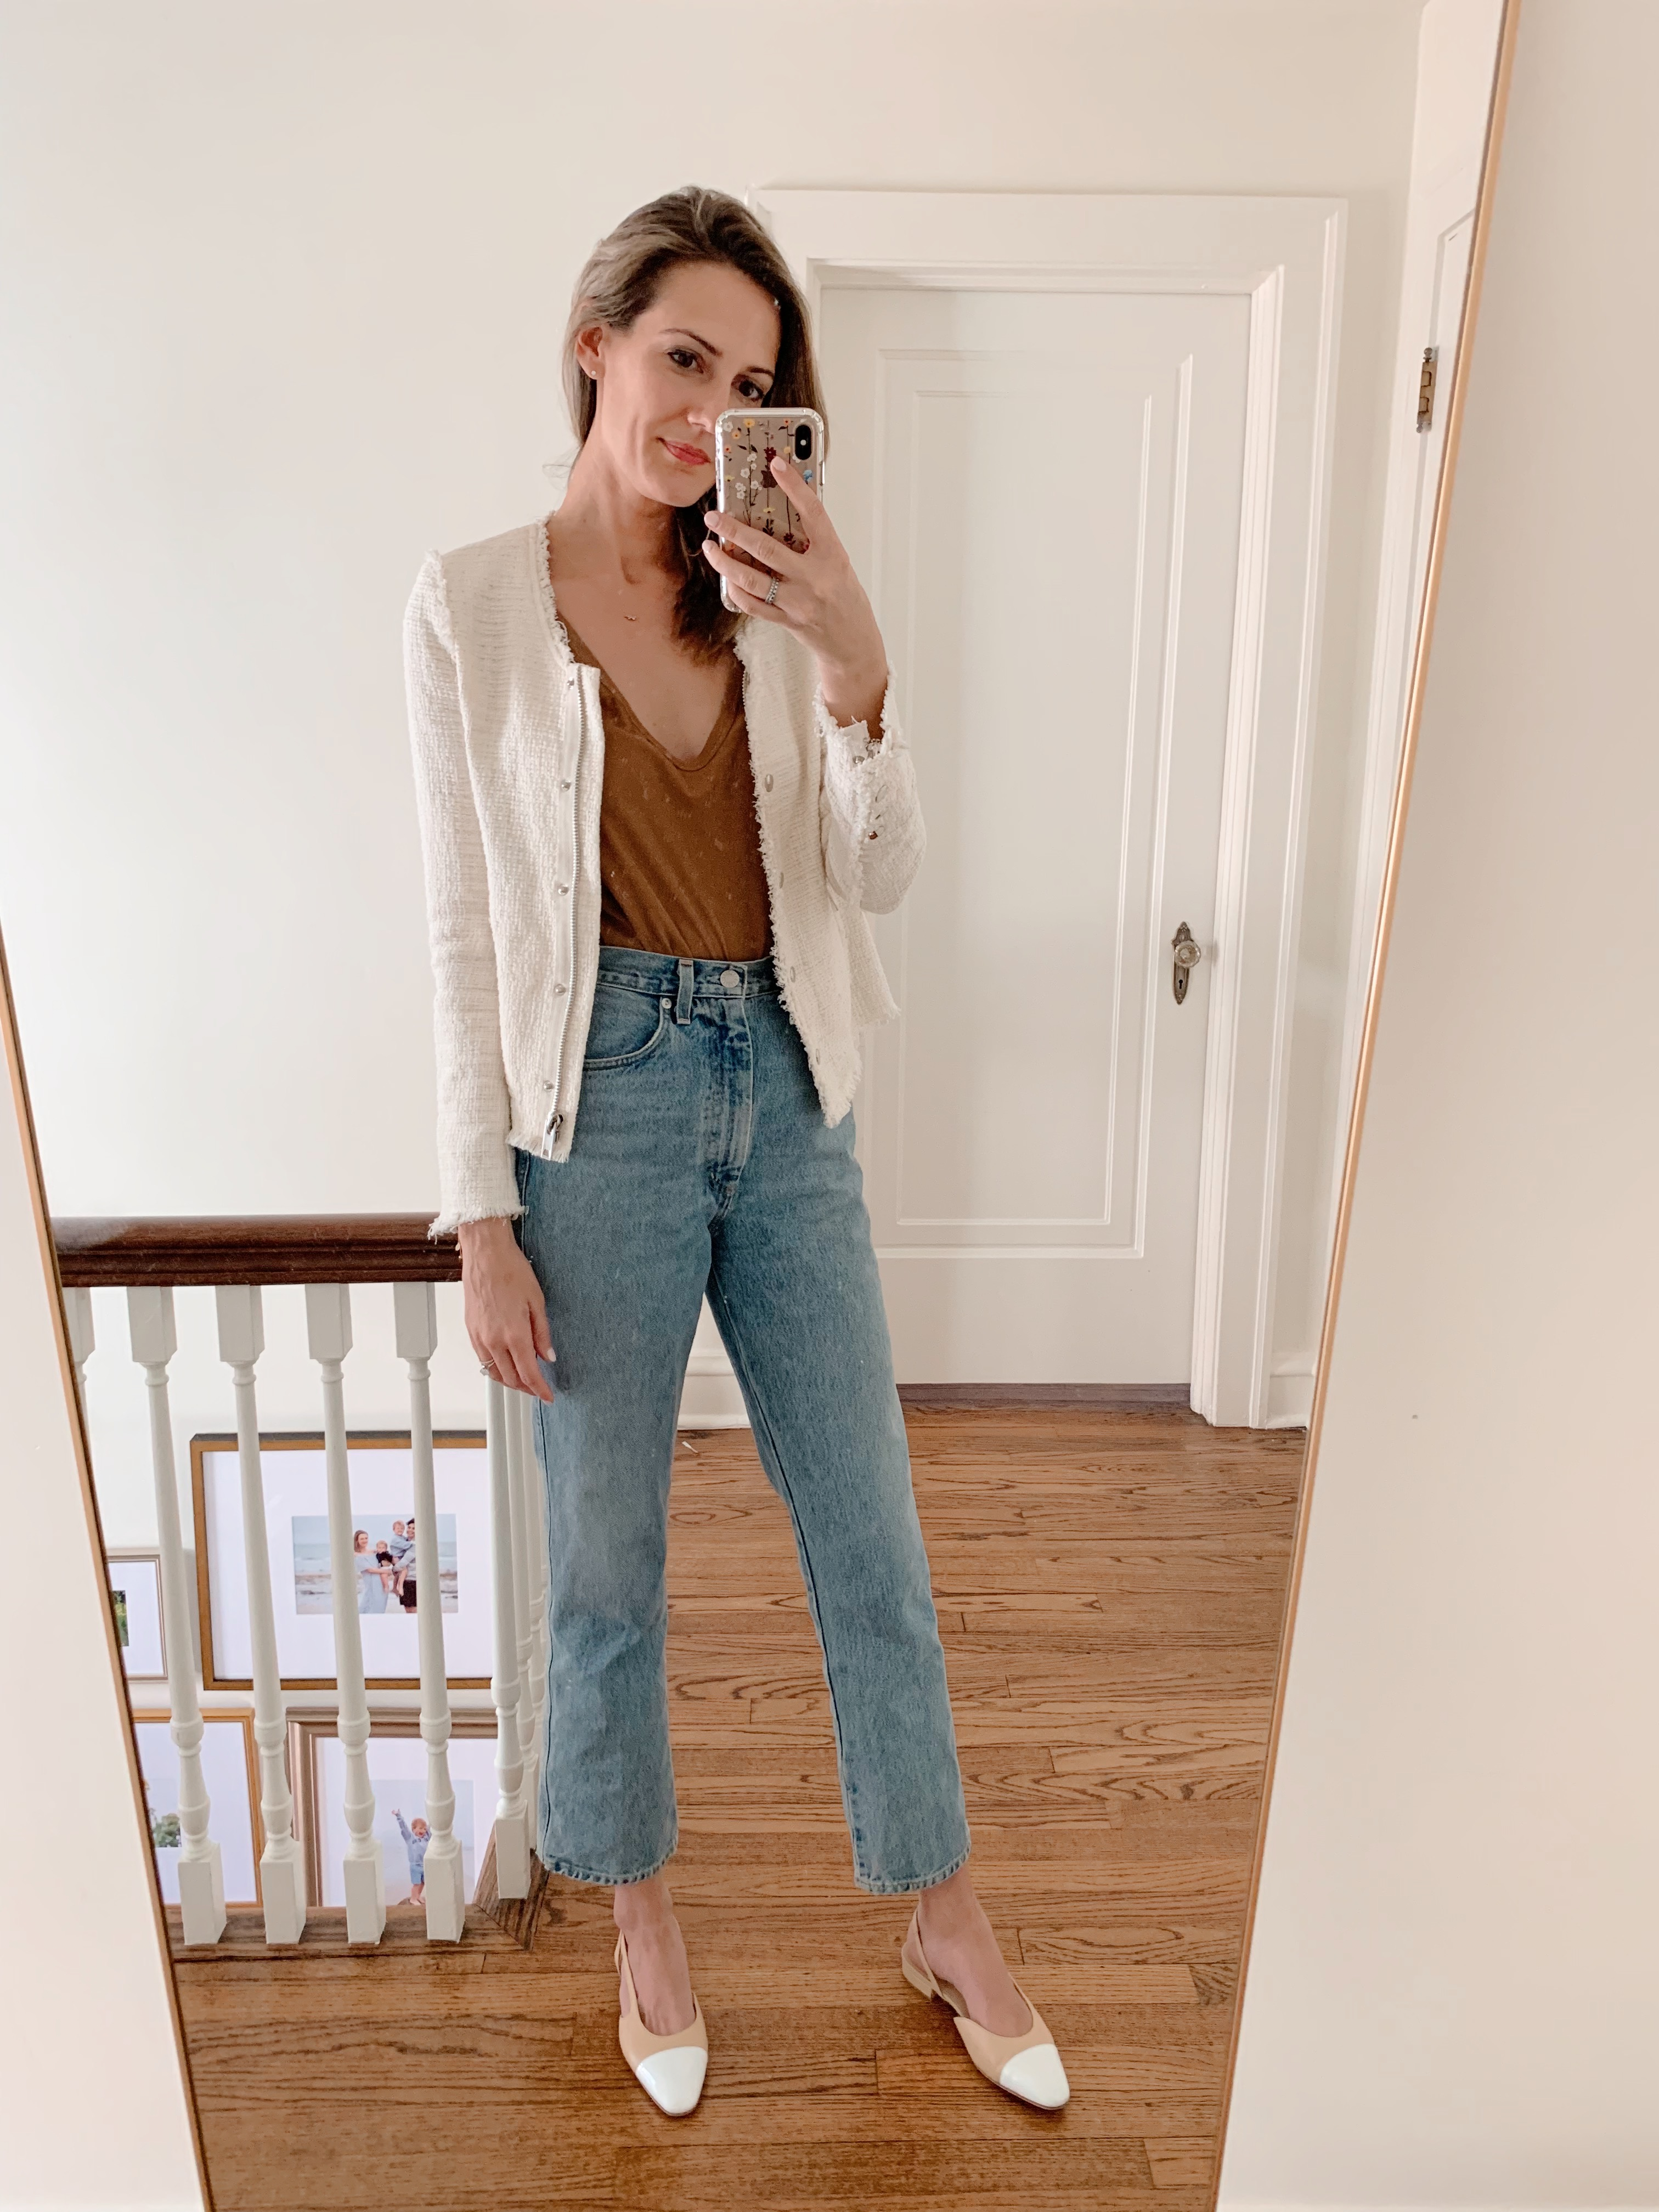 how to style knit jacket